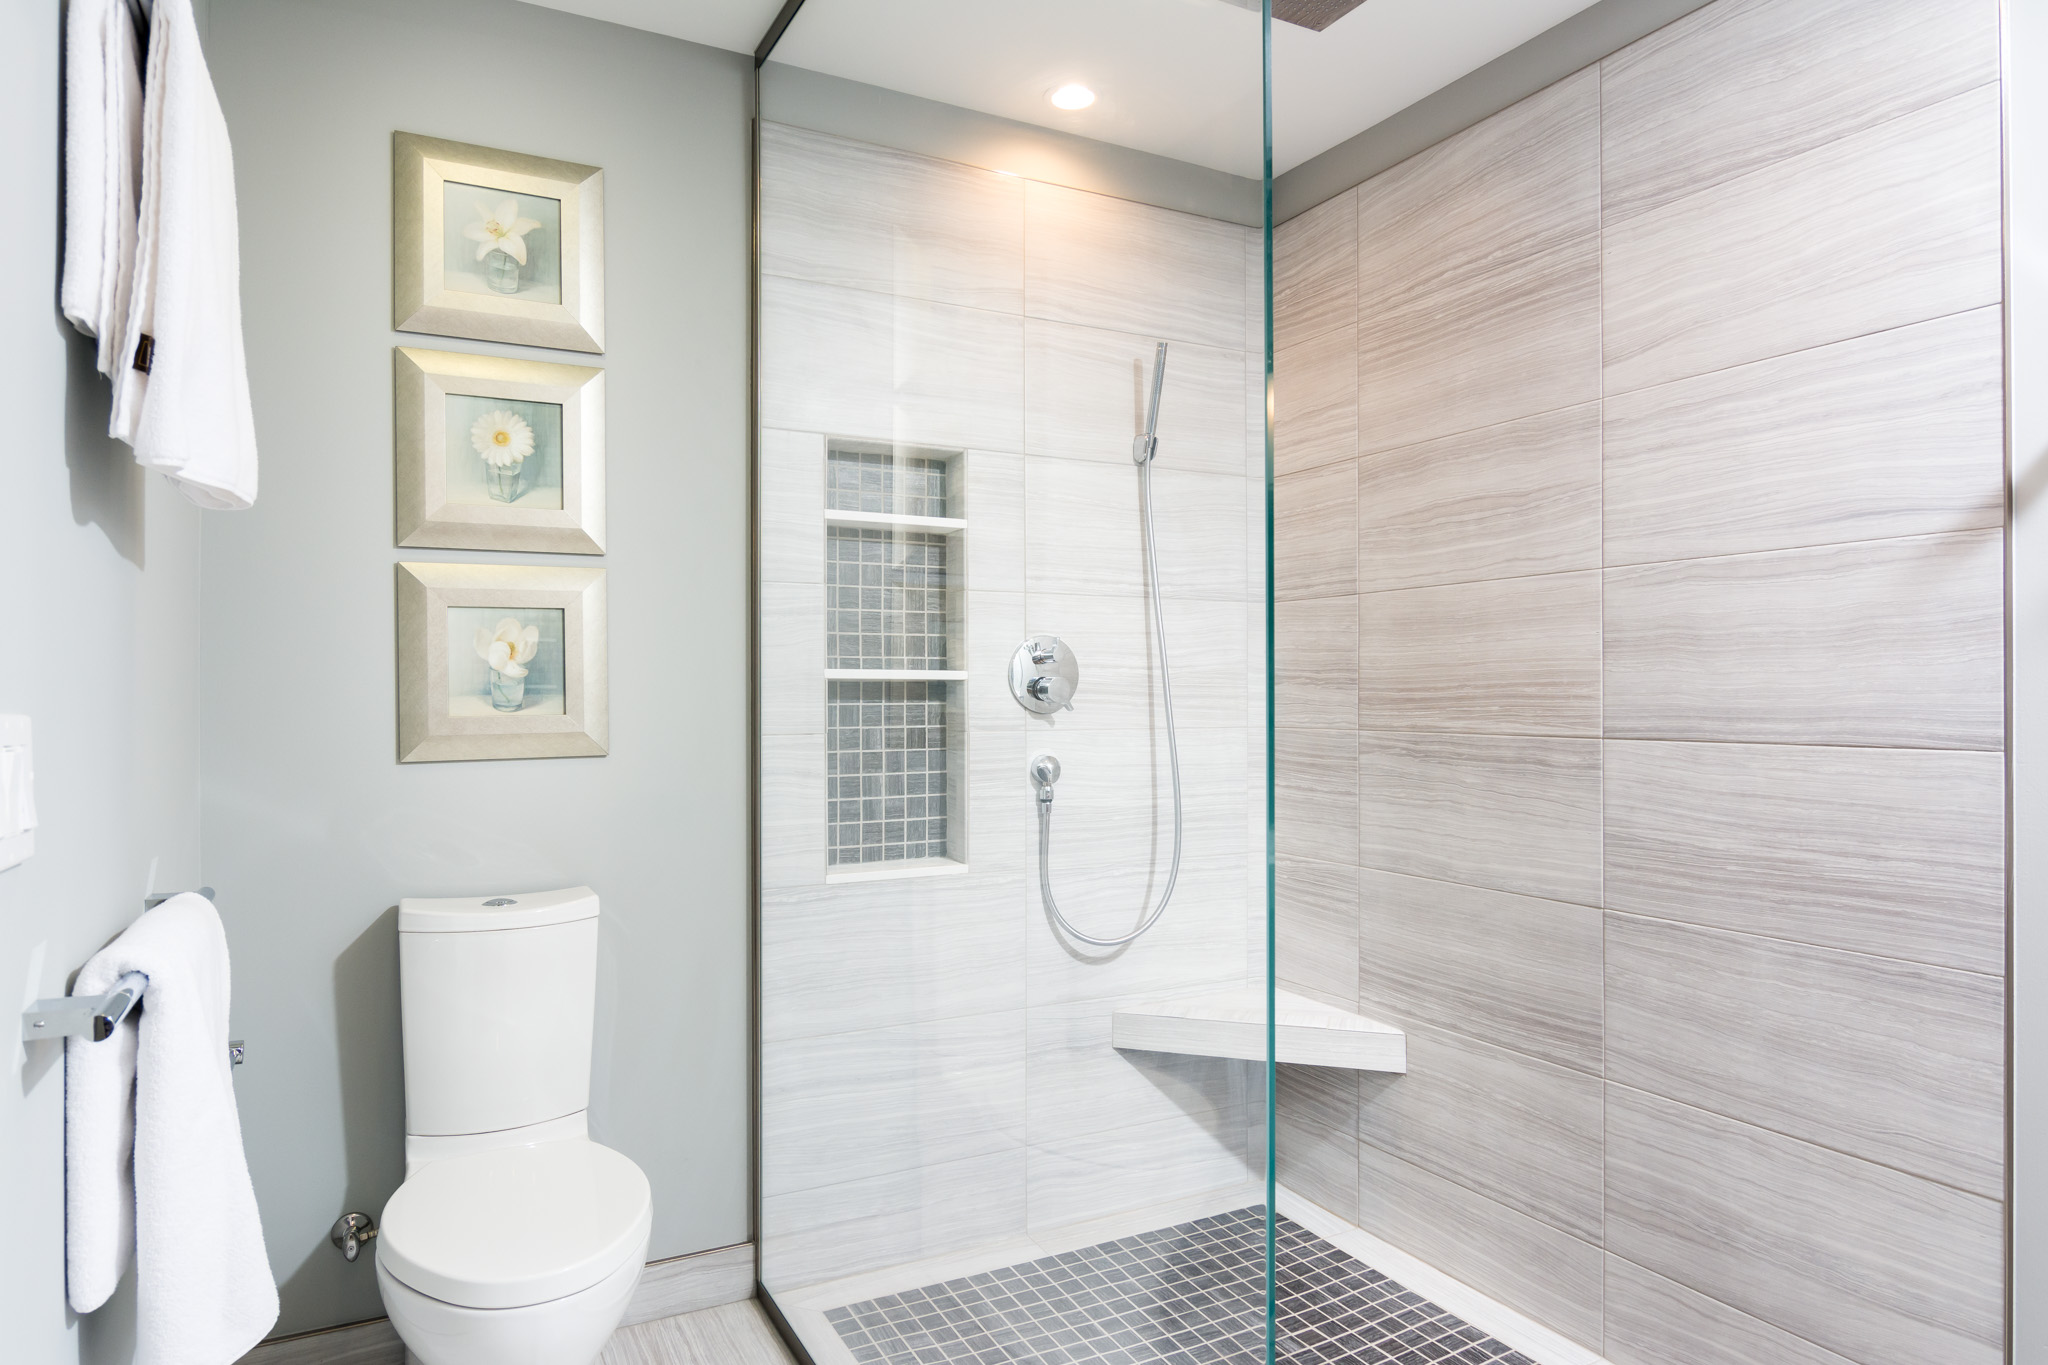 Advice On Master Bath Remodeling With A Doorless Shower Design Forward Build Remodel